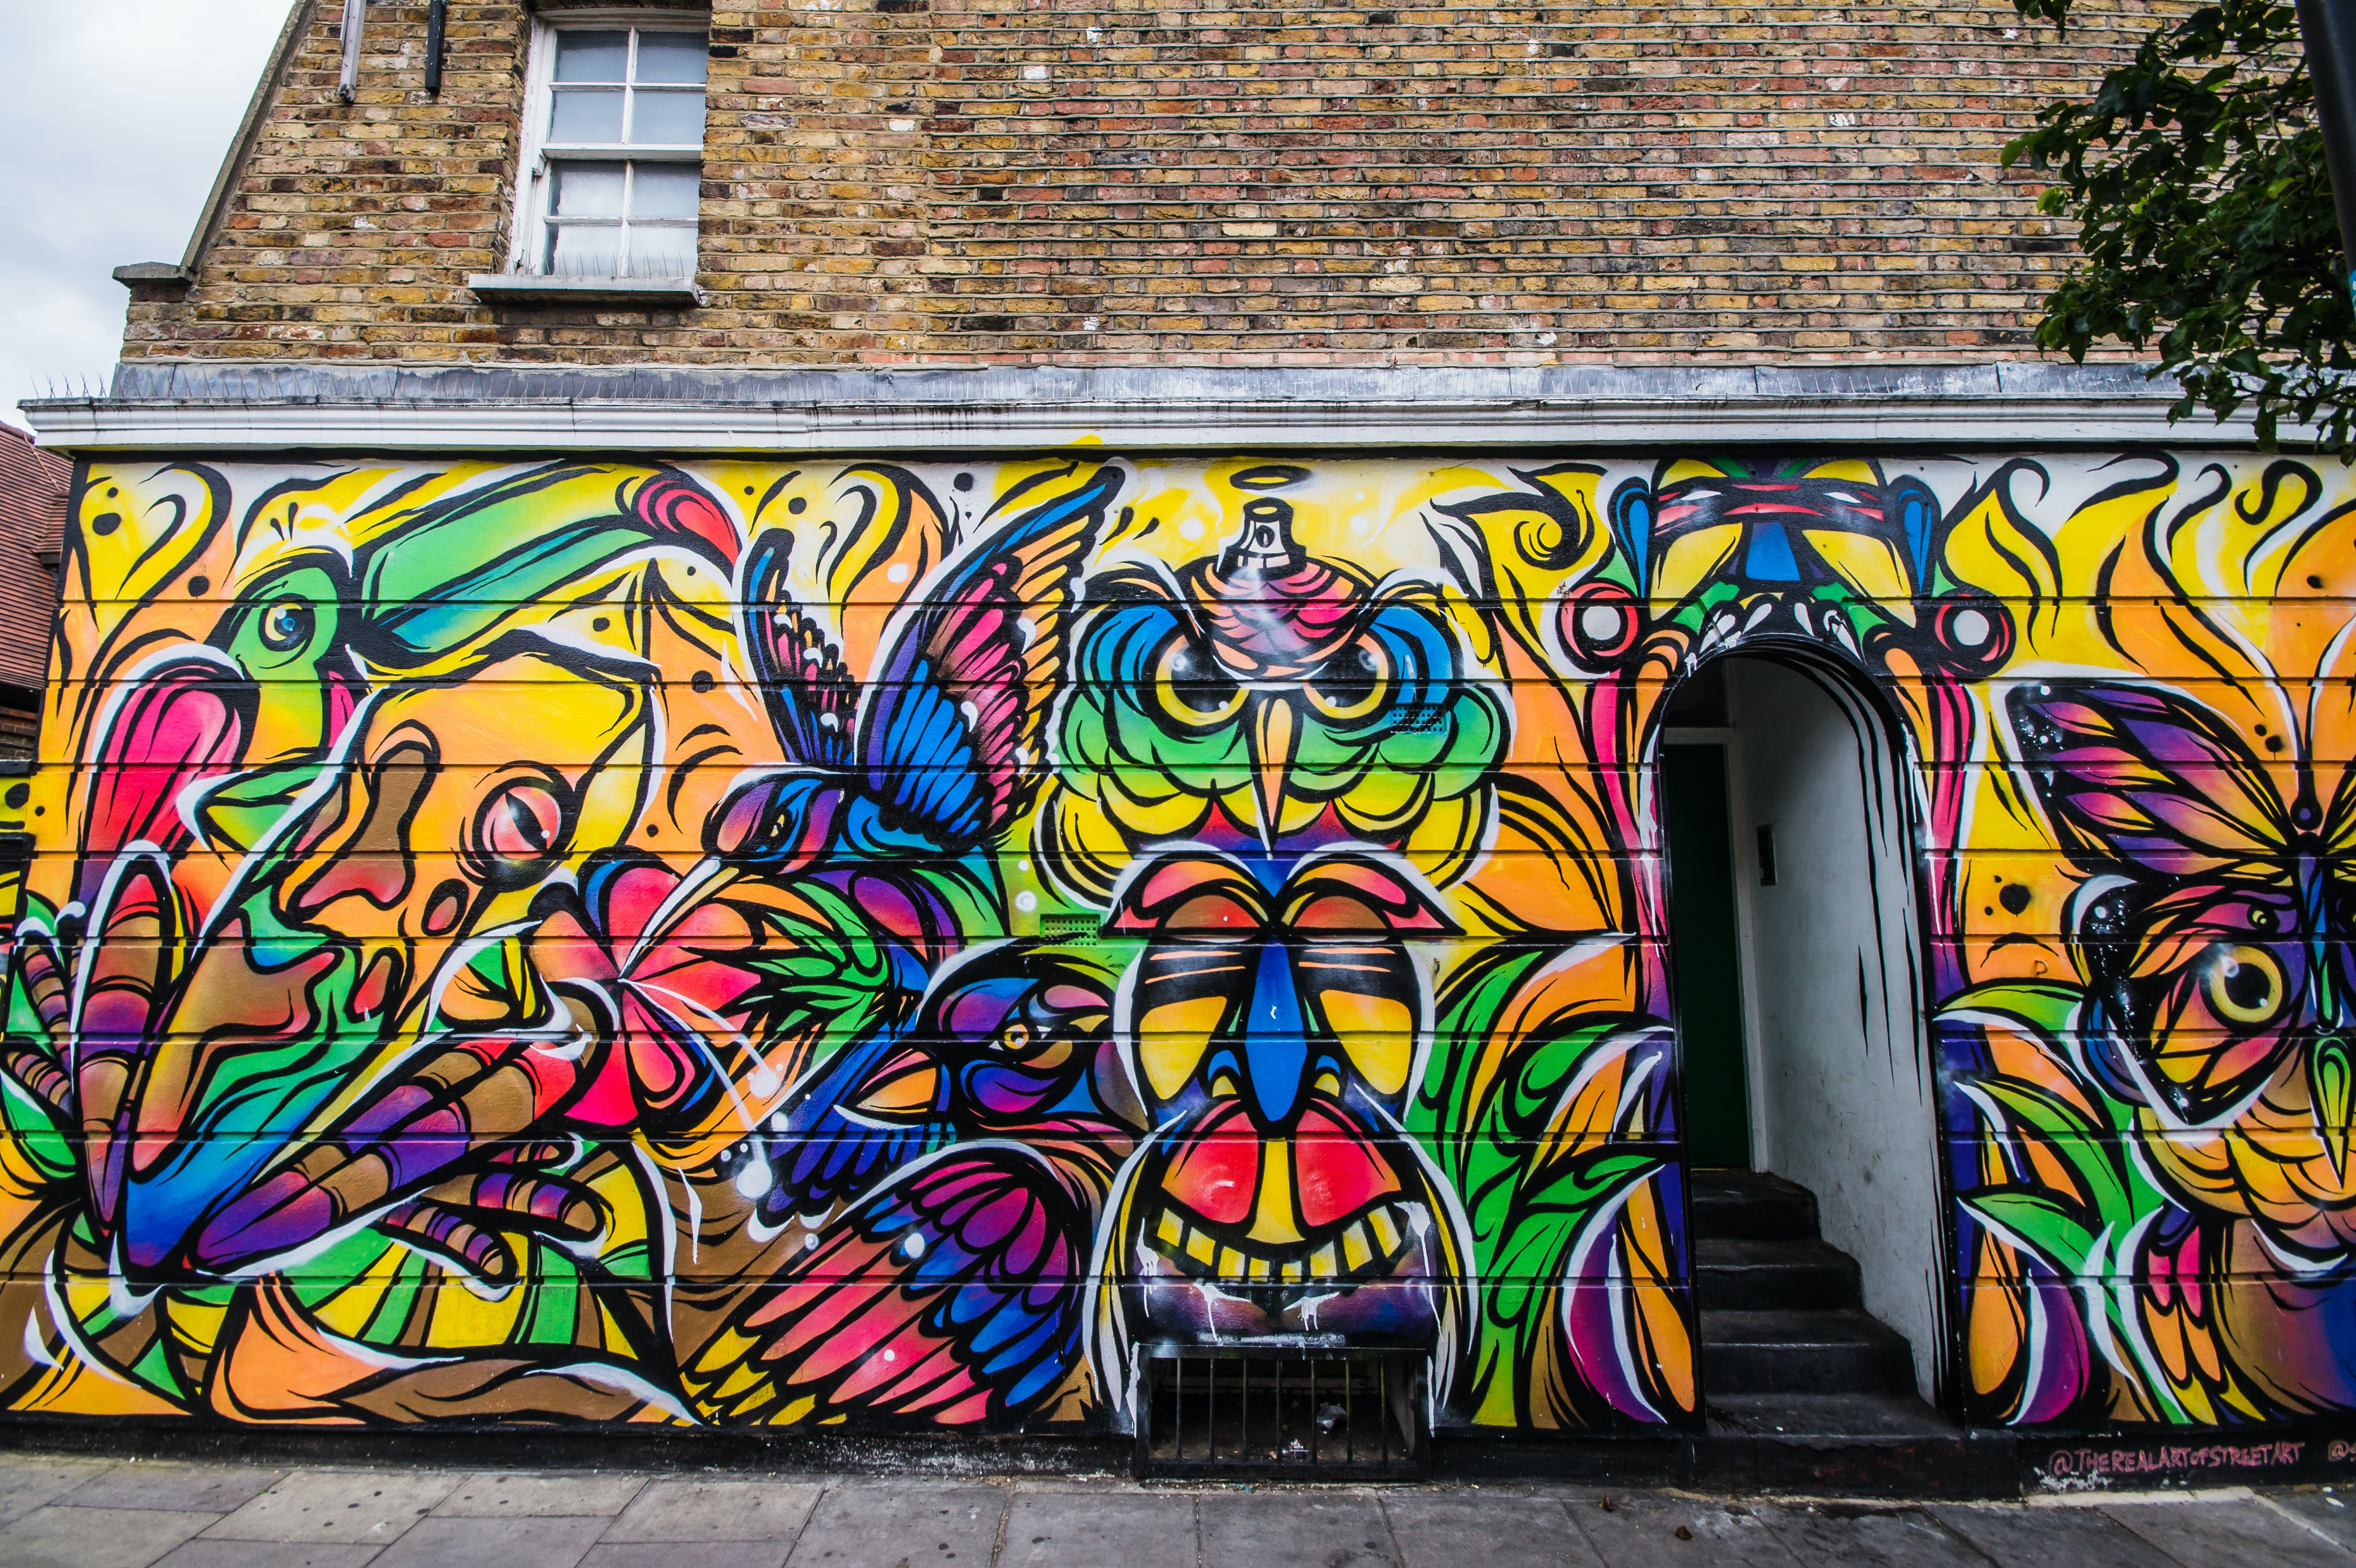 Colorful street art graffiti painting on building exterior in Camden Town